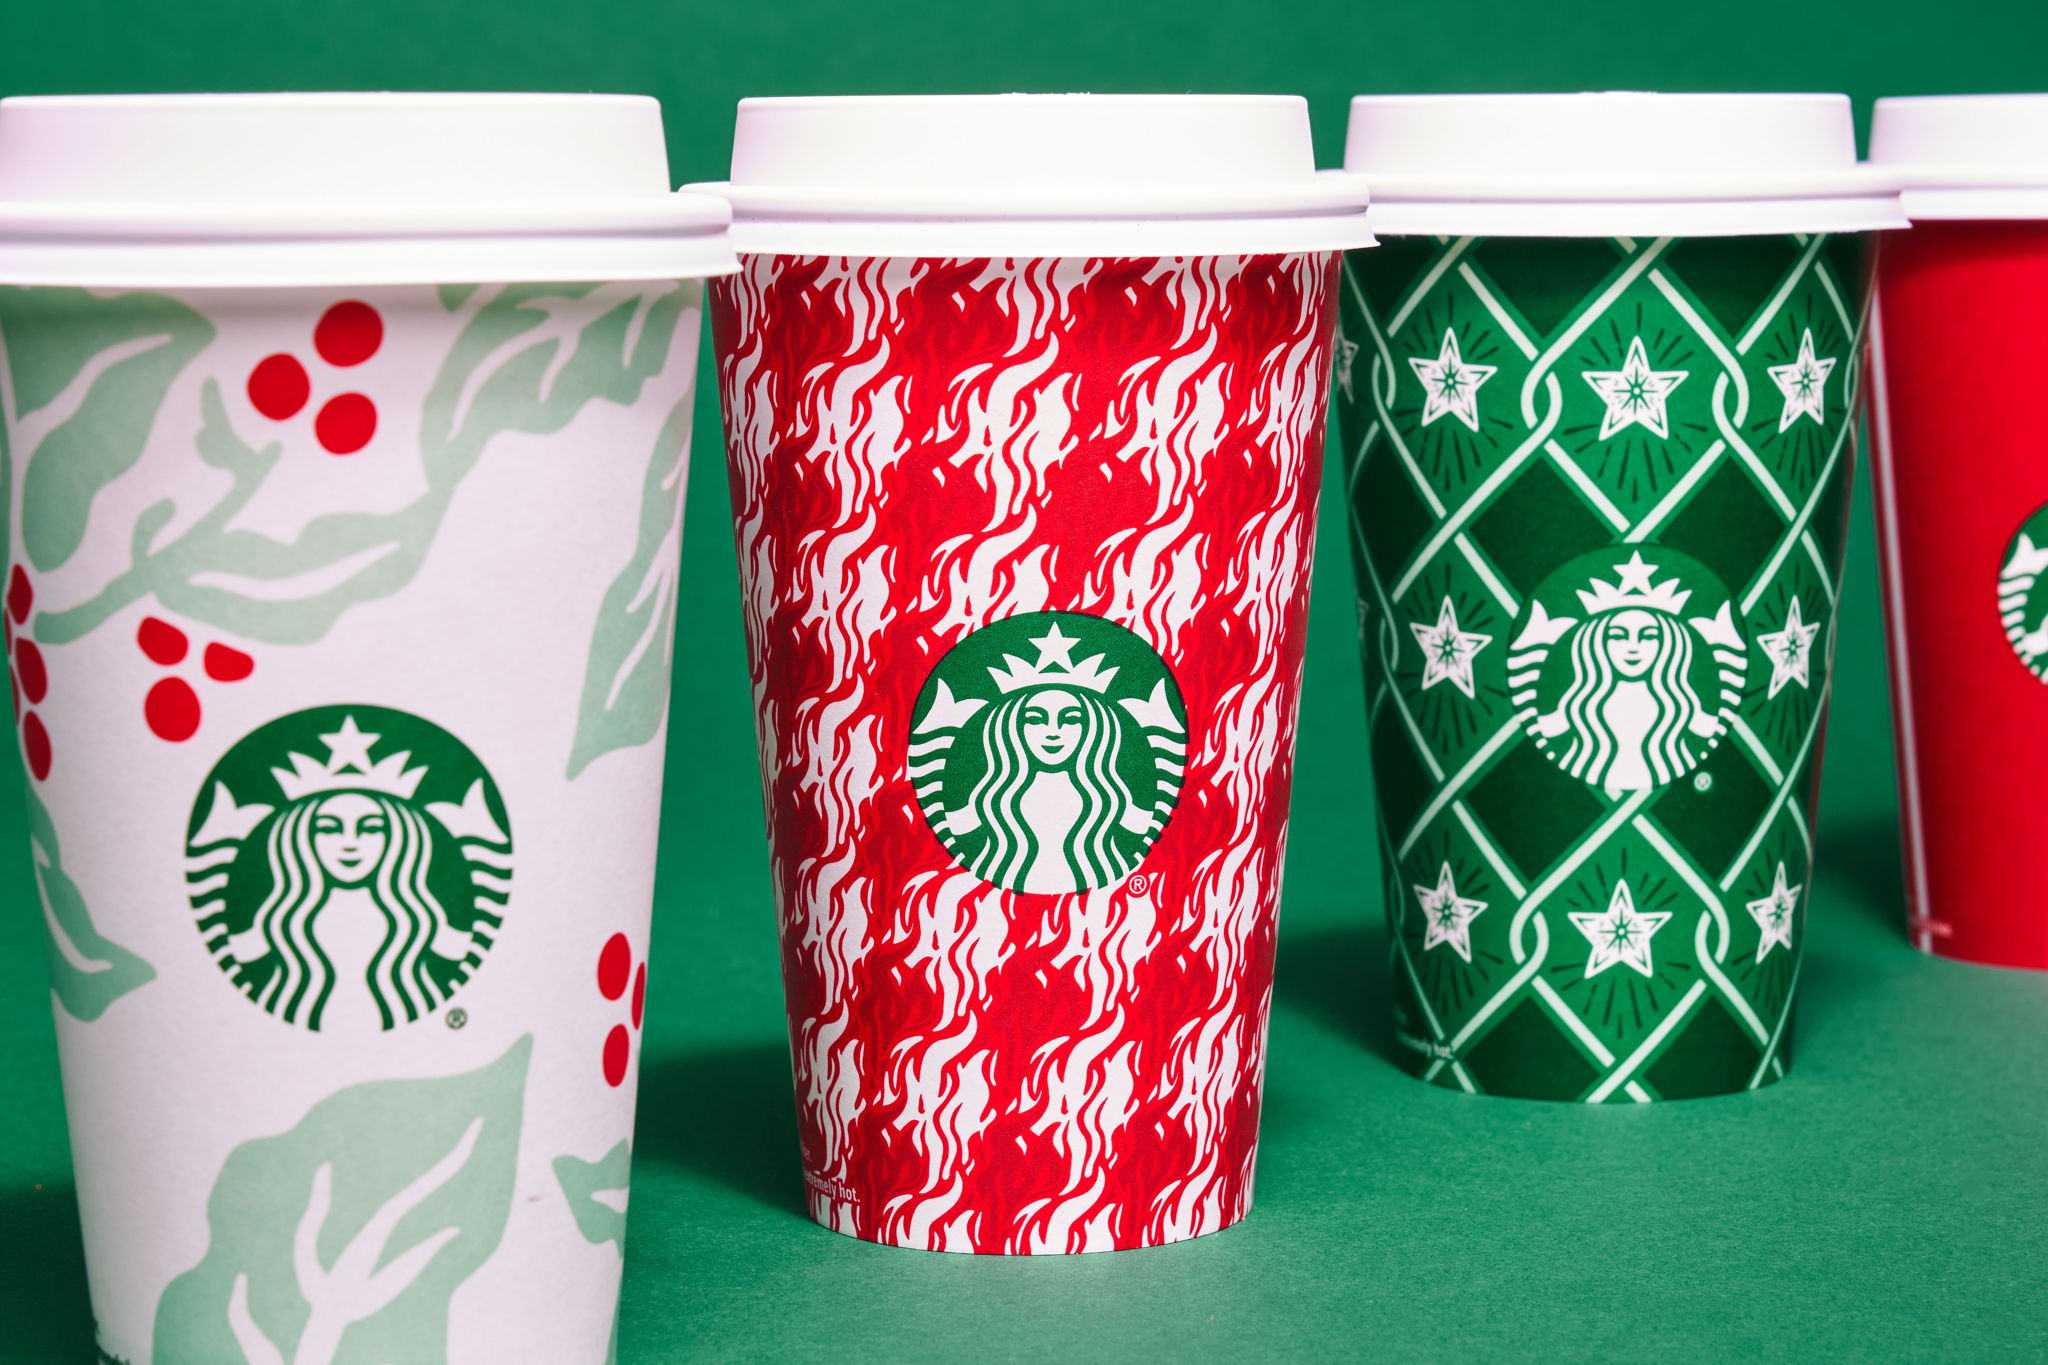 The_Dieline_Starbucks_Holiday-JStrutz-103018-0101_1.jpg